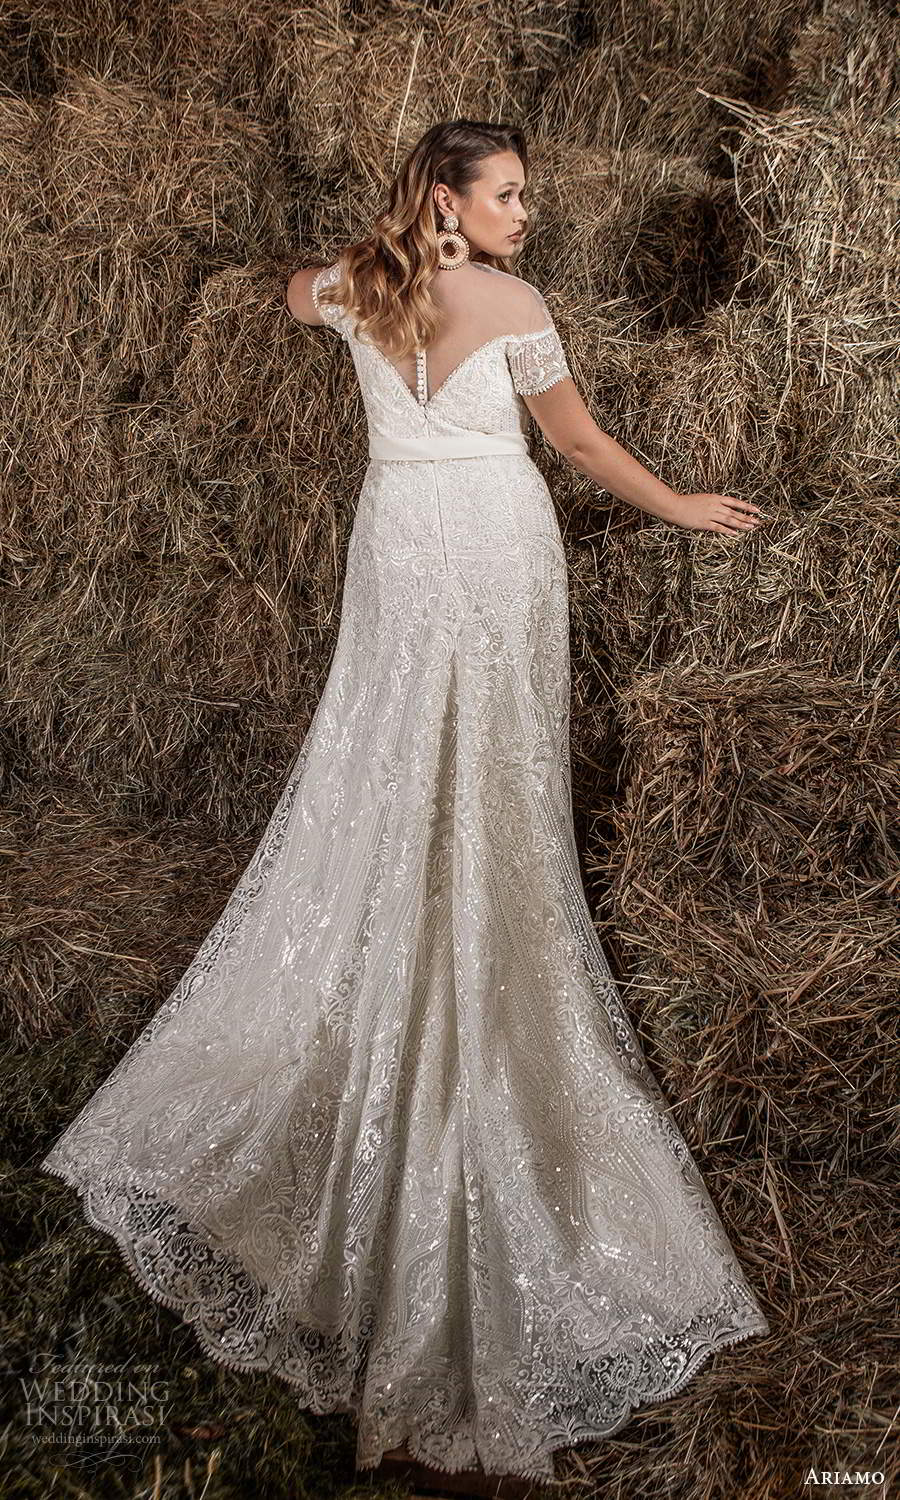 ariamo 2021 plus bridal off shoulder cap sleeves plunging sweetheart neckline fully embellished modified a line trumpet wedding dress chapel train (2) bv